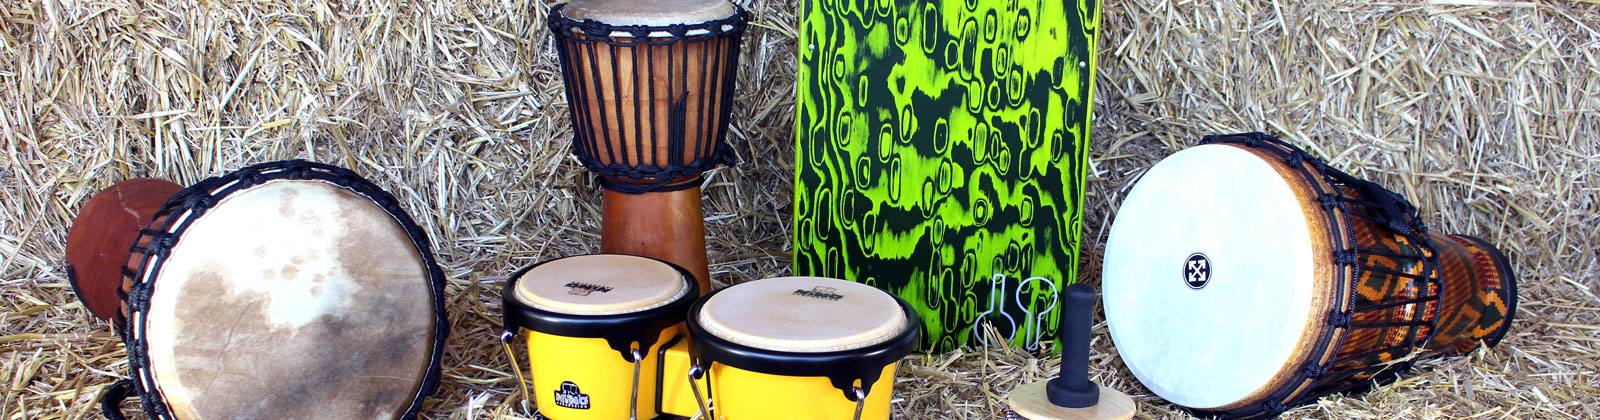 Drums - und Percussion